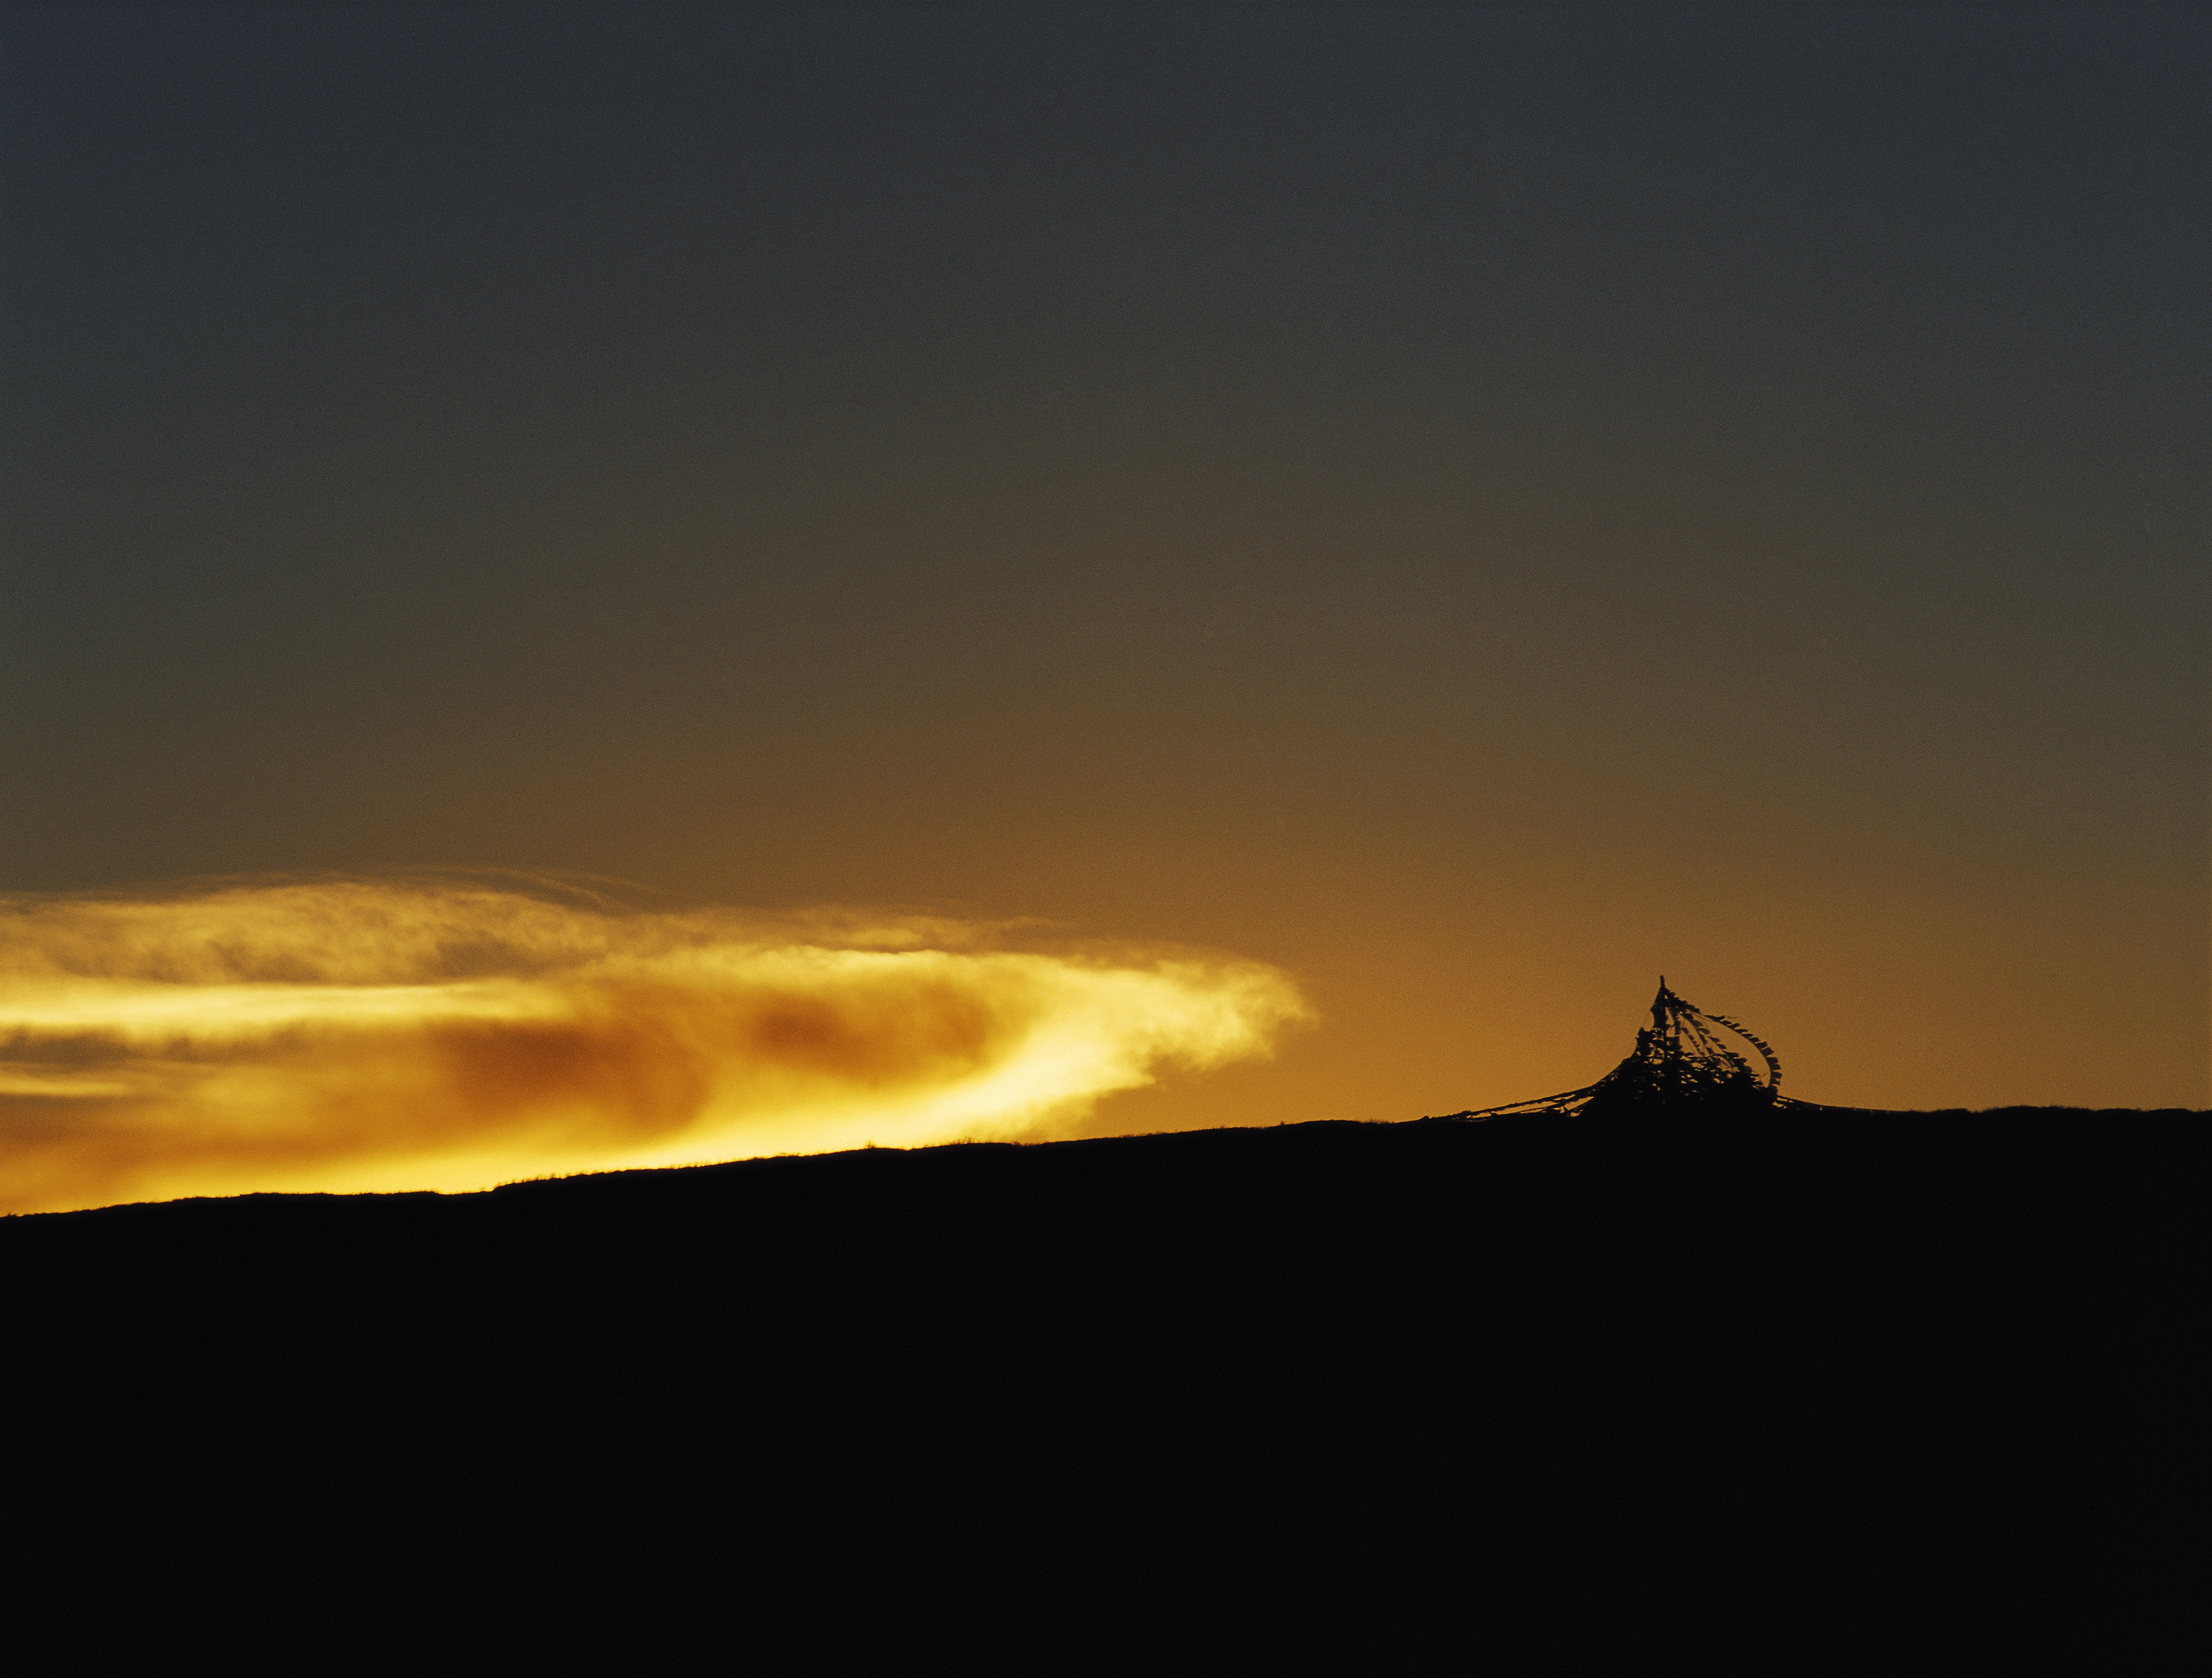 Deep gold sunset against a hill silhouette with glowing clouds.